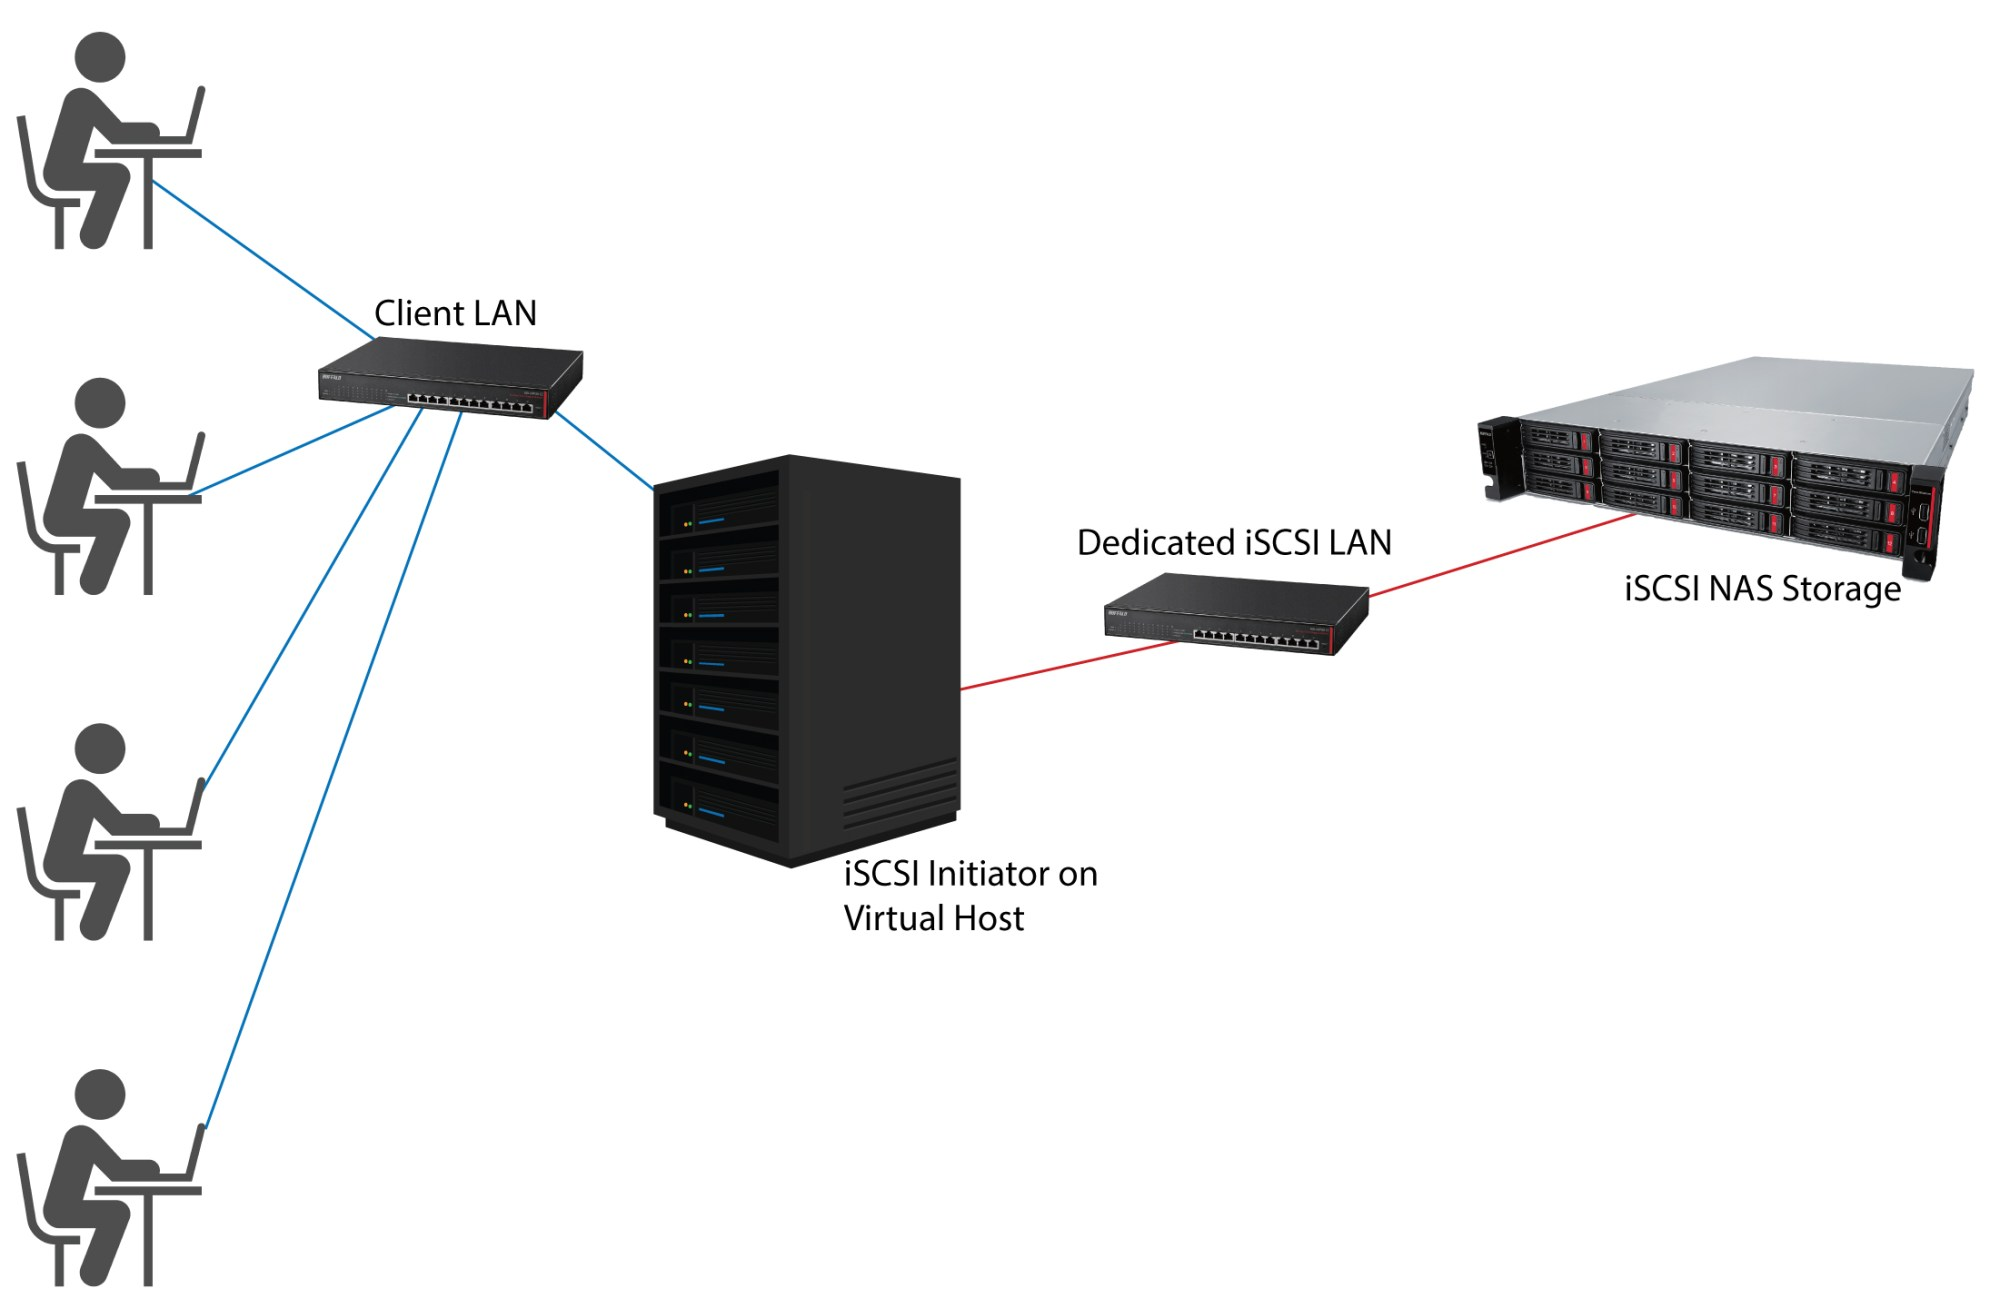 hight resolution of how does iscsi add storage space to a virtual host server while maintaining strong performance